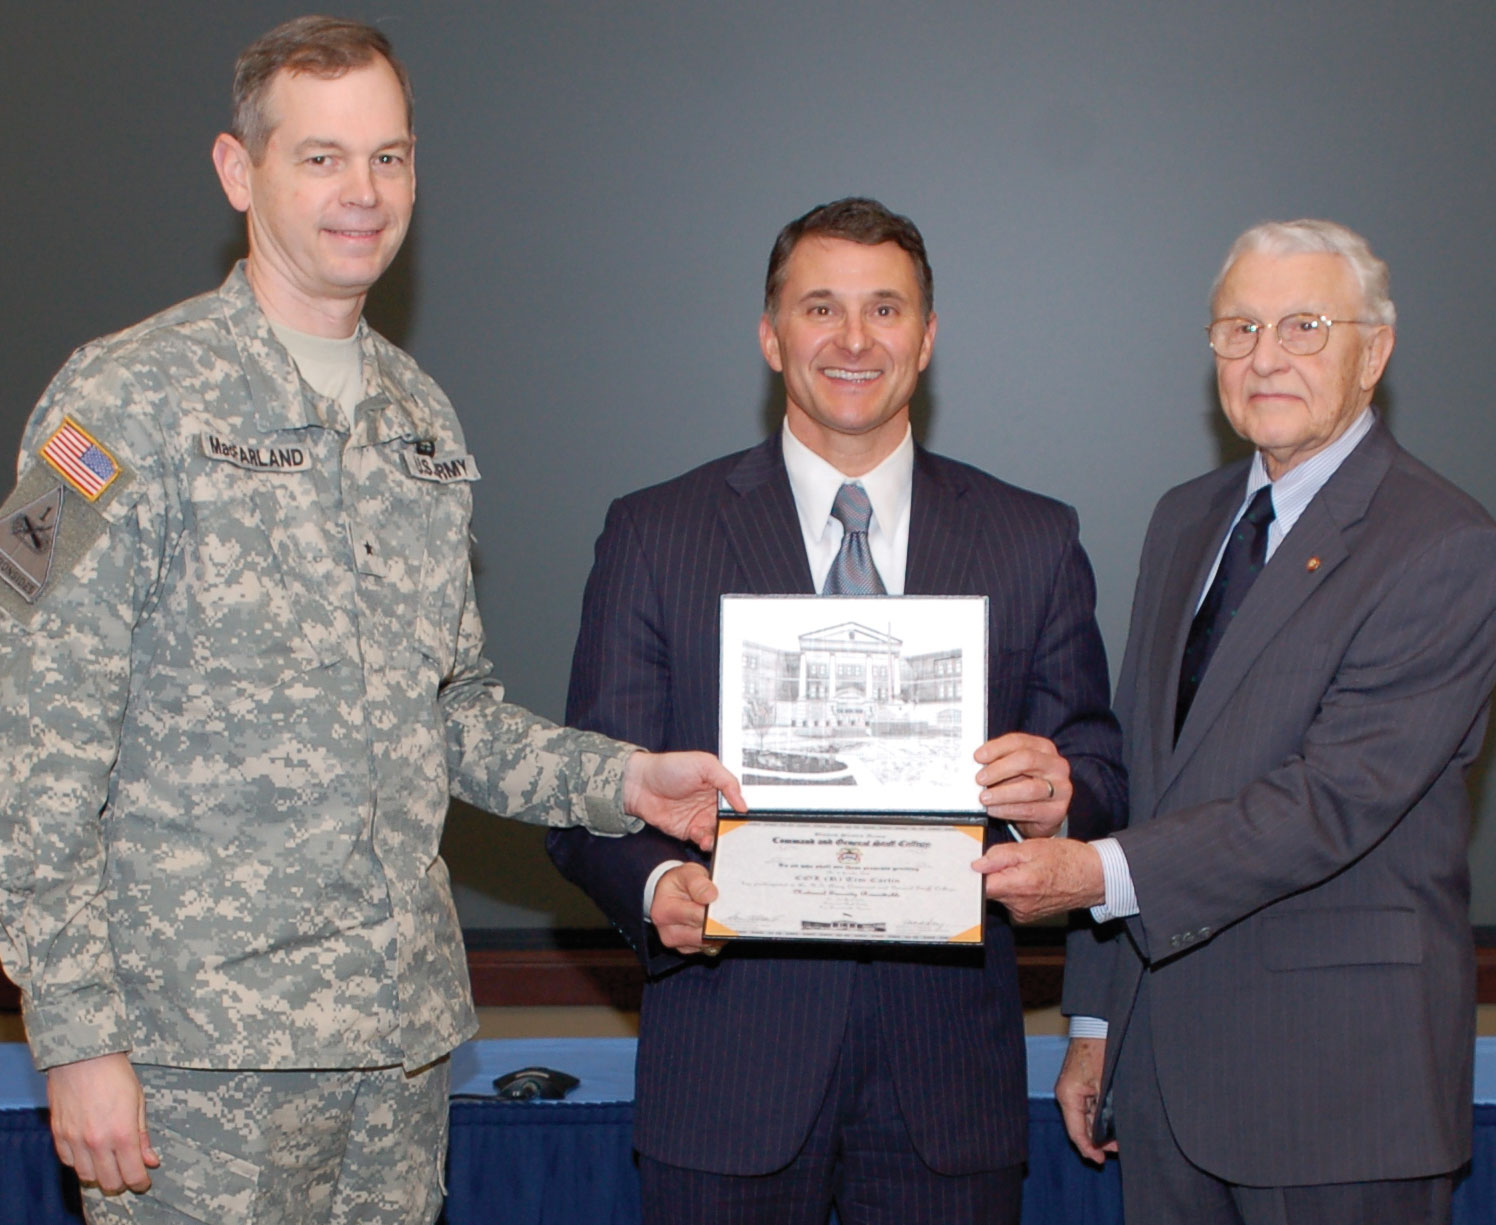 Tim Carlin receives his CGSC Foundation National Security Roundtable certificate on April 26, 2011 from then CGSC Deputy Commandant Brig. Gen. Sean MacFarland, left, and retired Lt. Gen. Robert Arter, then chairman of the CGSC Foundation, right. The next year Carlin would accept a nomination to serve on the Foundation board of trustees.